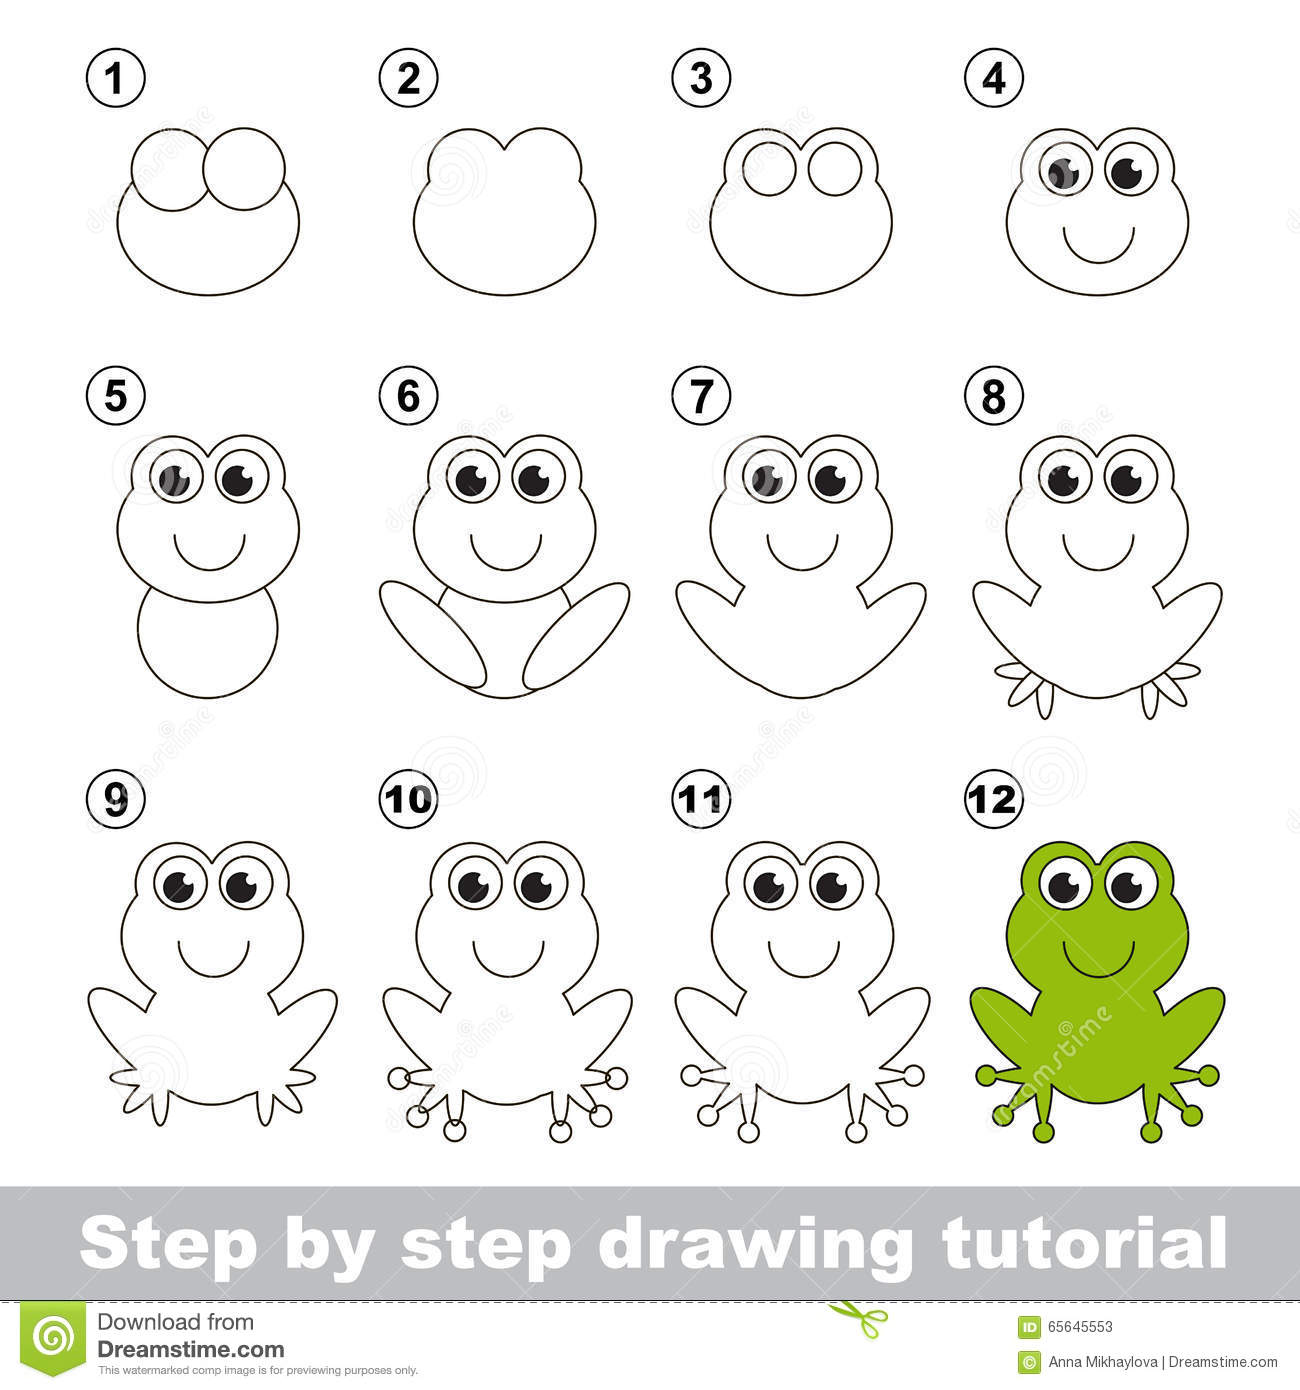 Uncategorized Draw A Frog Step By Step green frog drawing tutorial stock vector image 65645553 royalty free download tutorial